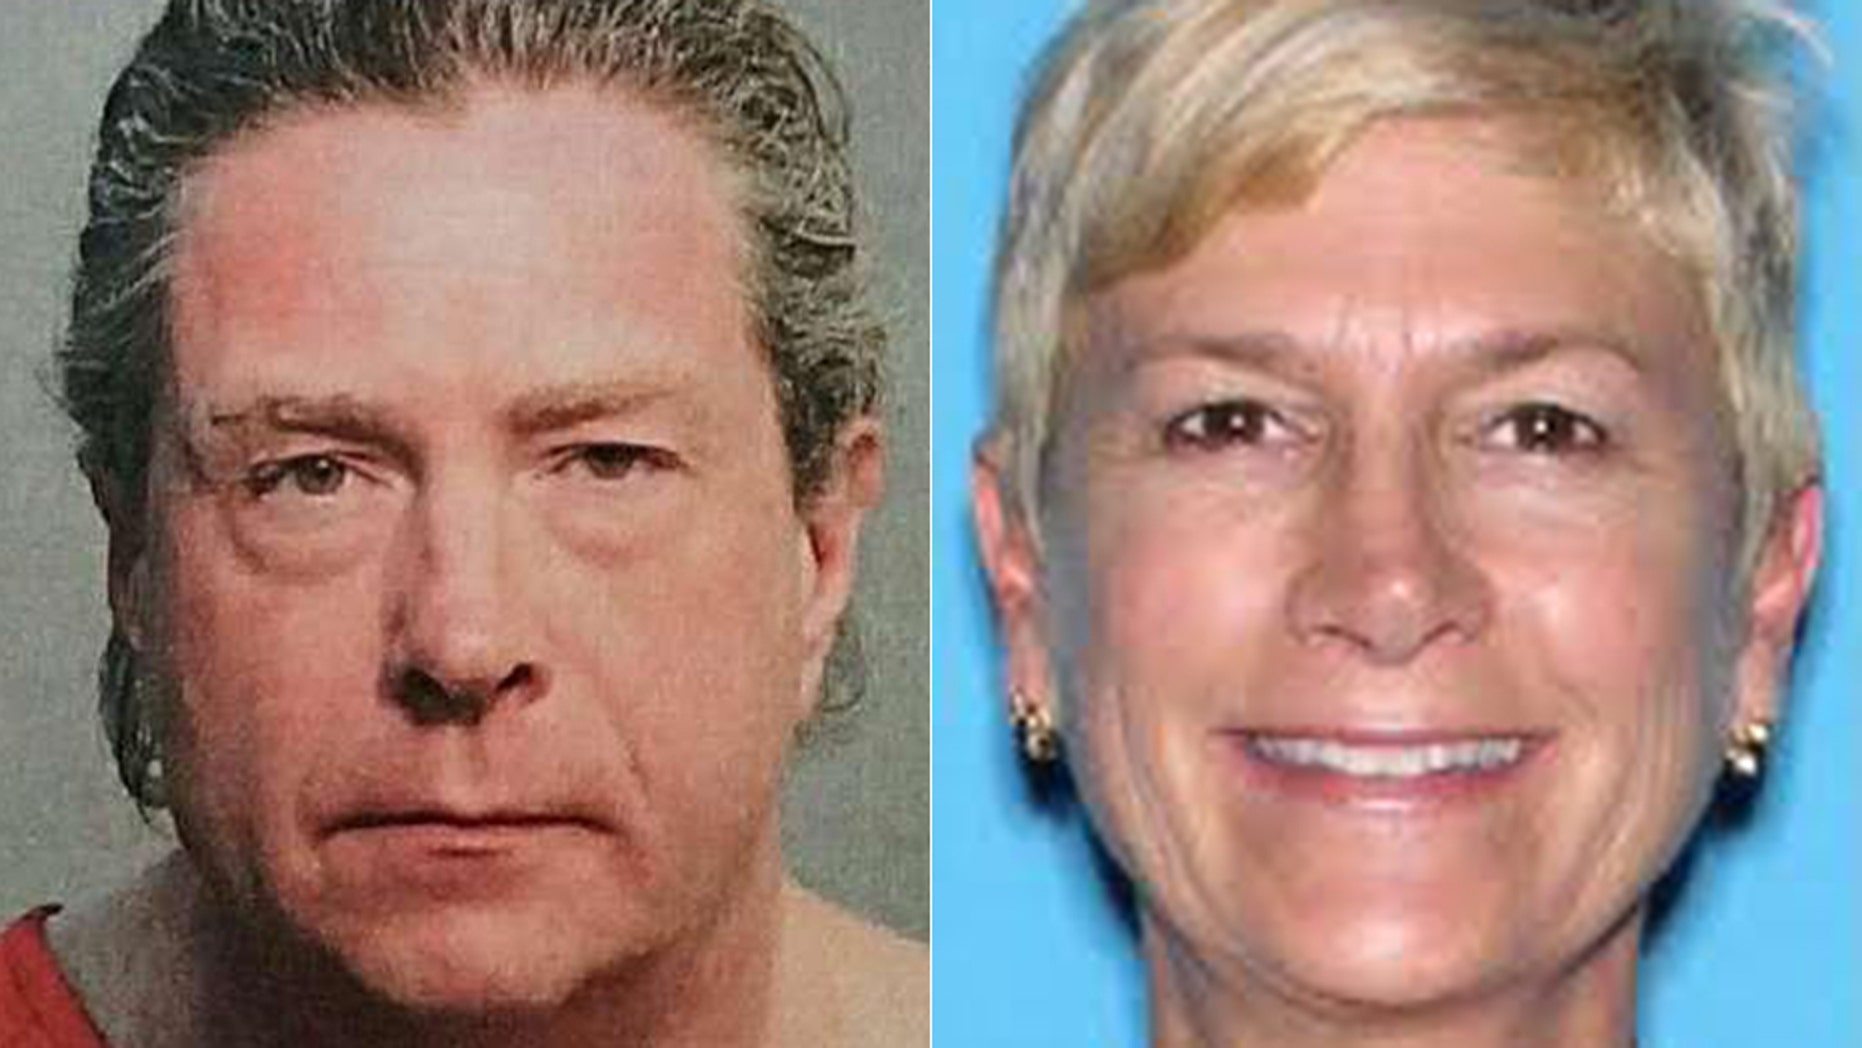 Scott Edward Nelson, 53, a reported homeless ex-convict was arrested as a person of interest in the murder of beloved Florida nanny, Jennifer Lynn Fulford.